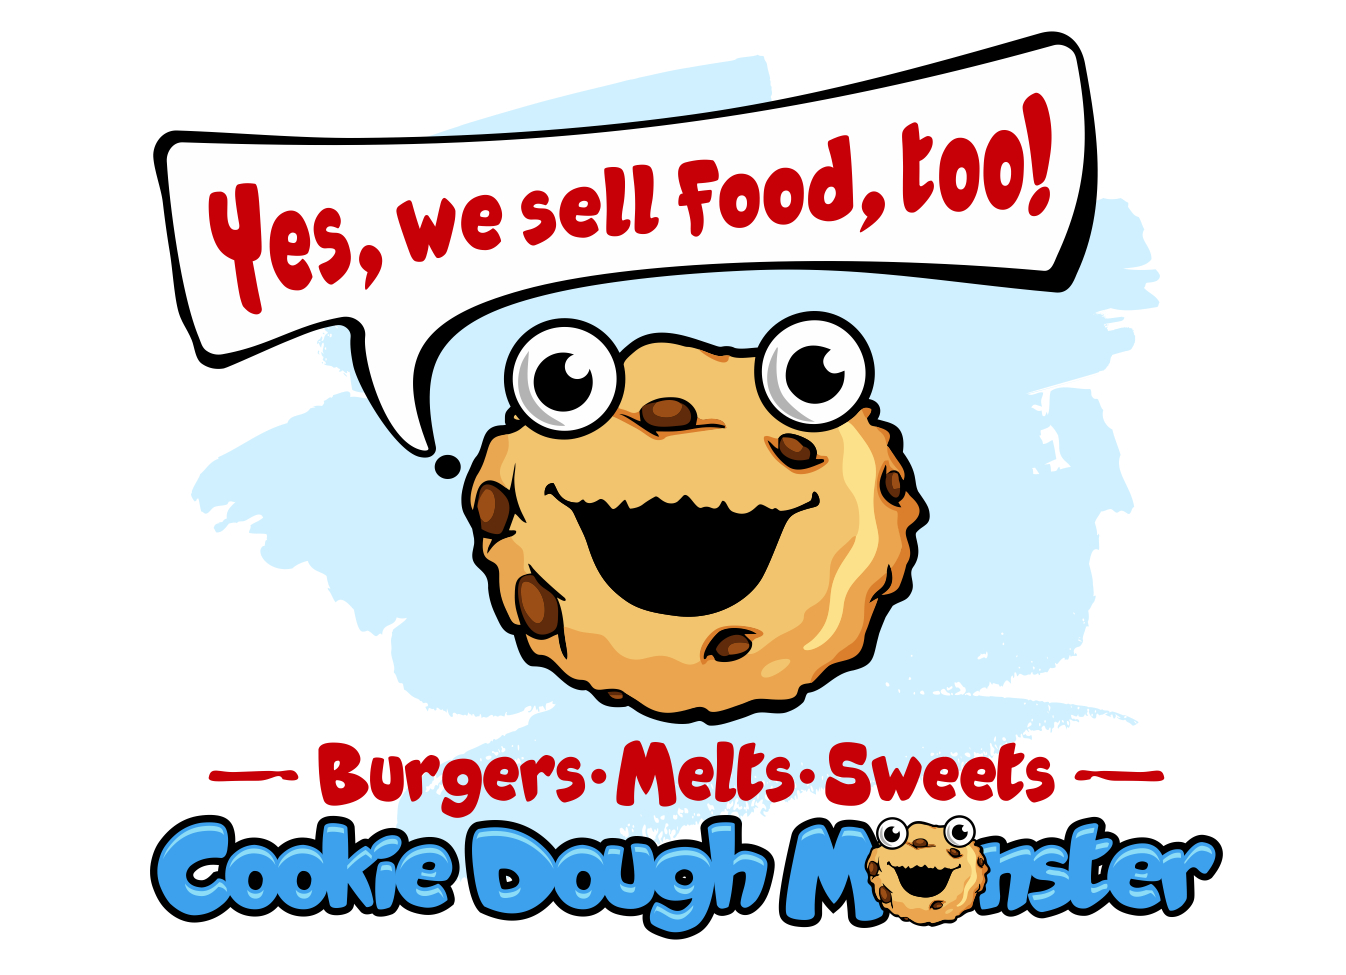 Cookie Dough Monster Cafe Home